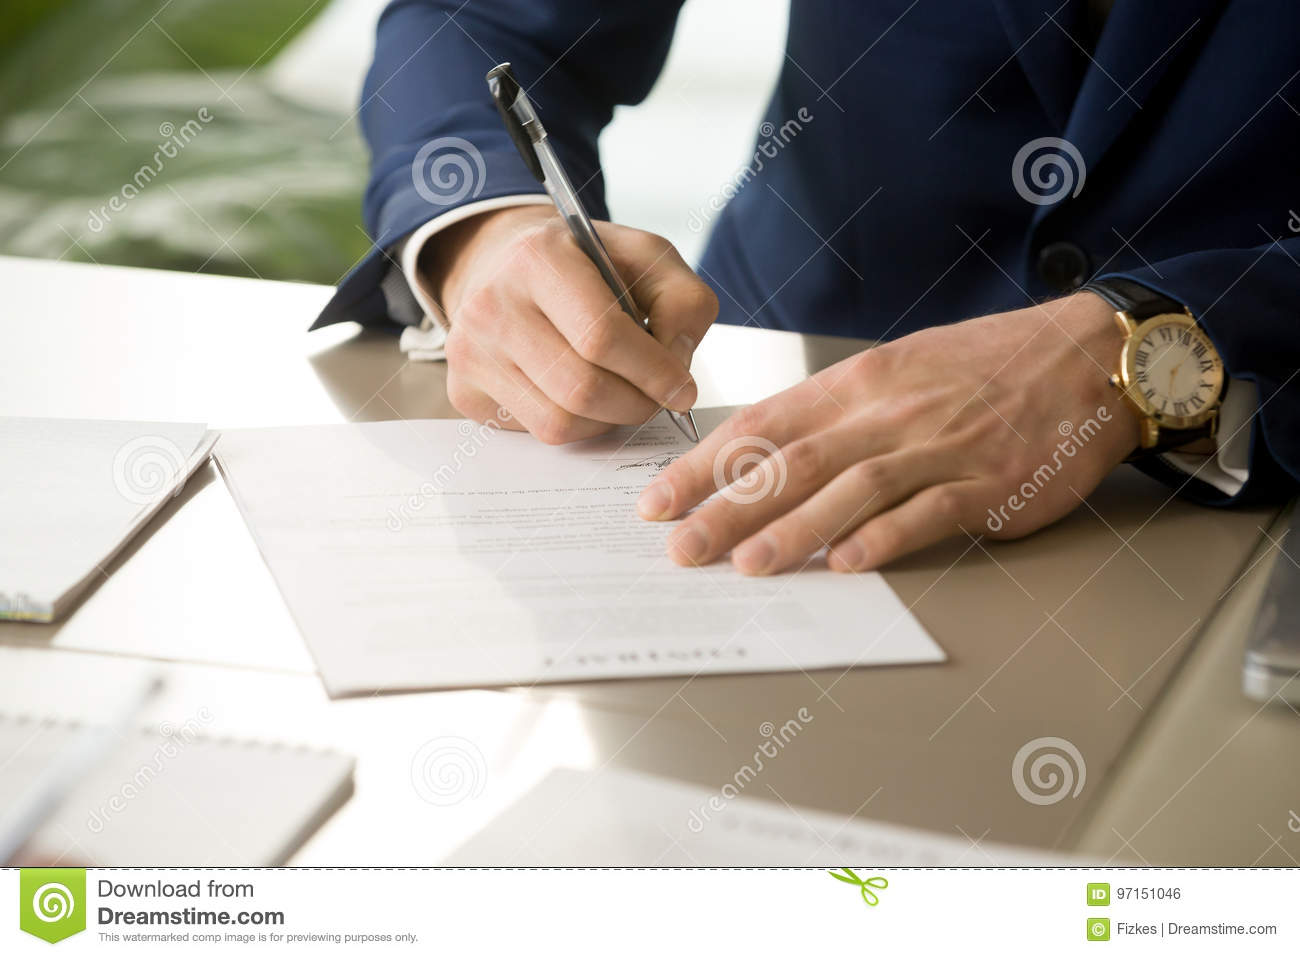 Male hand putting signature on contract, signing document, close